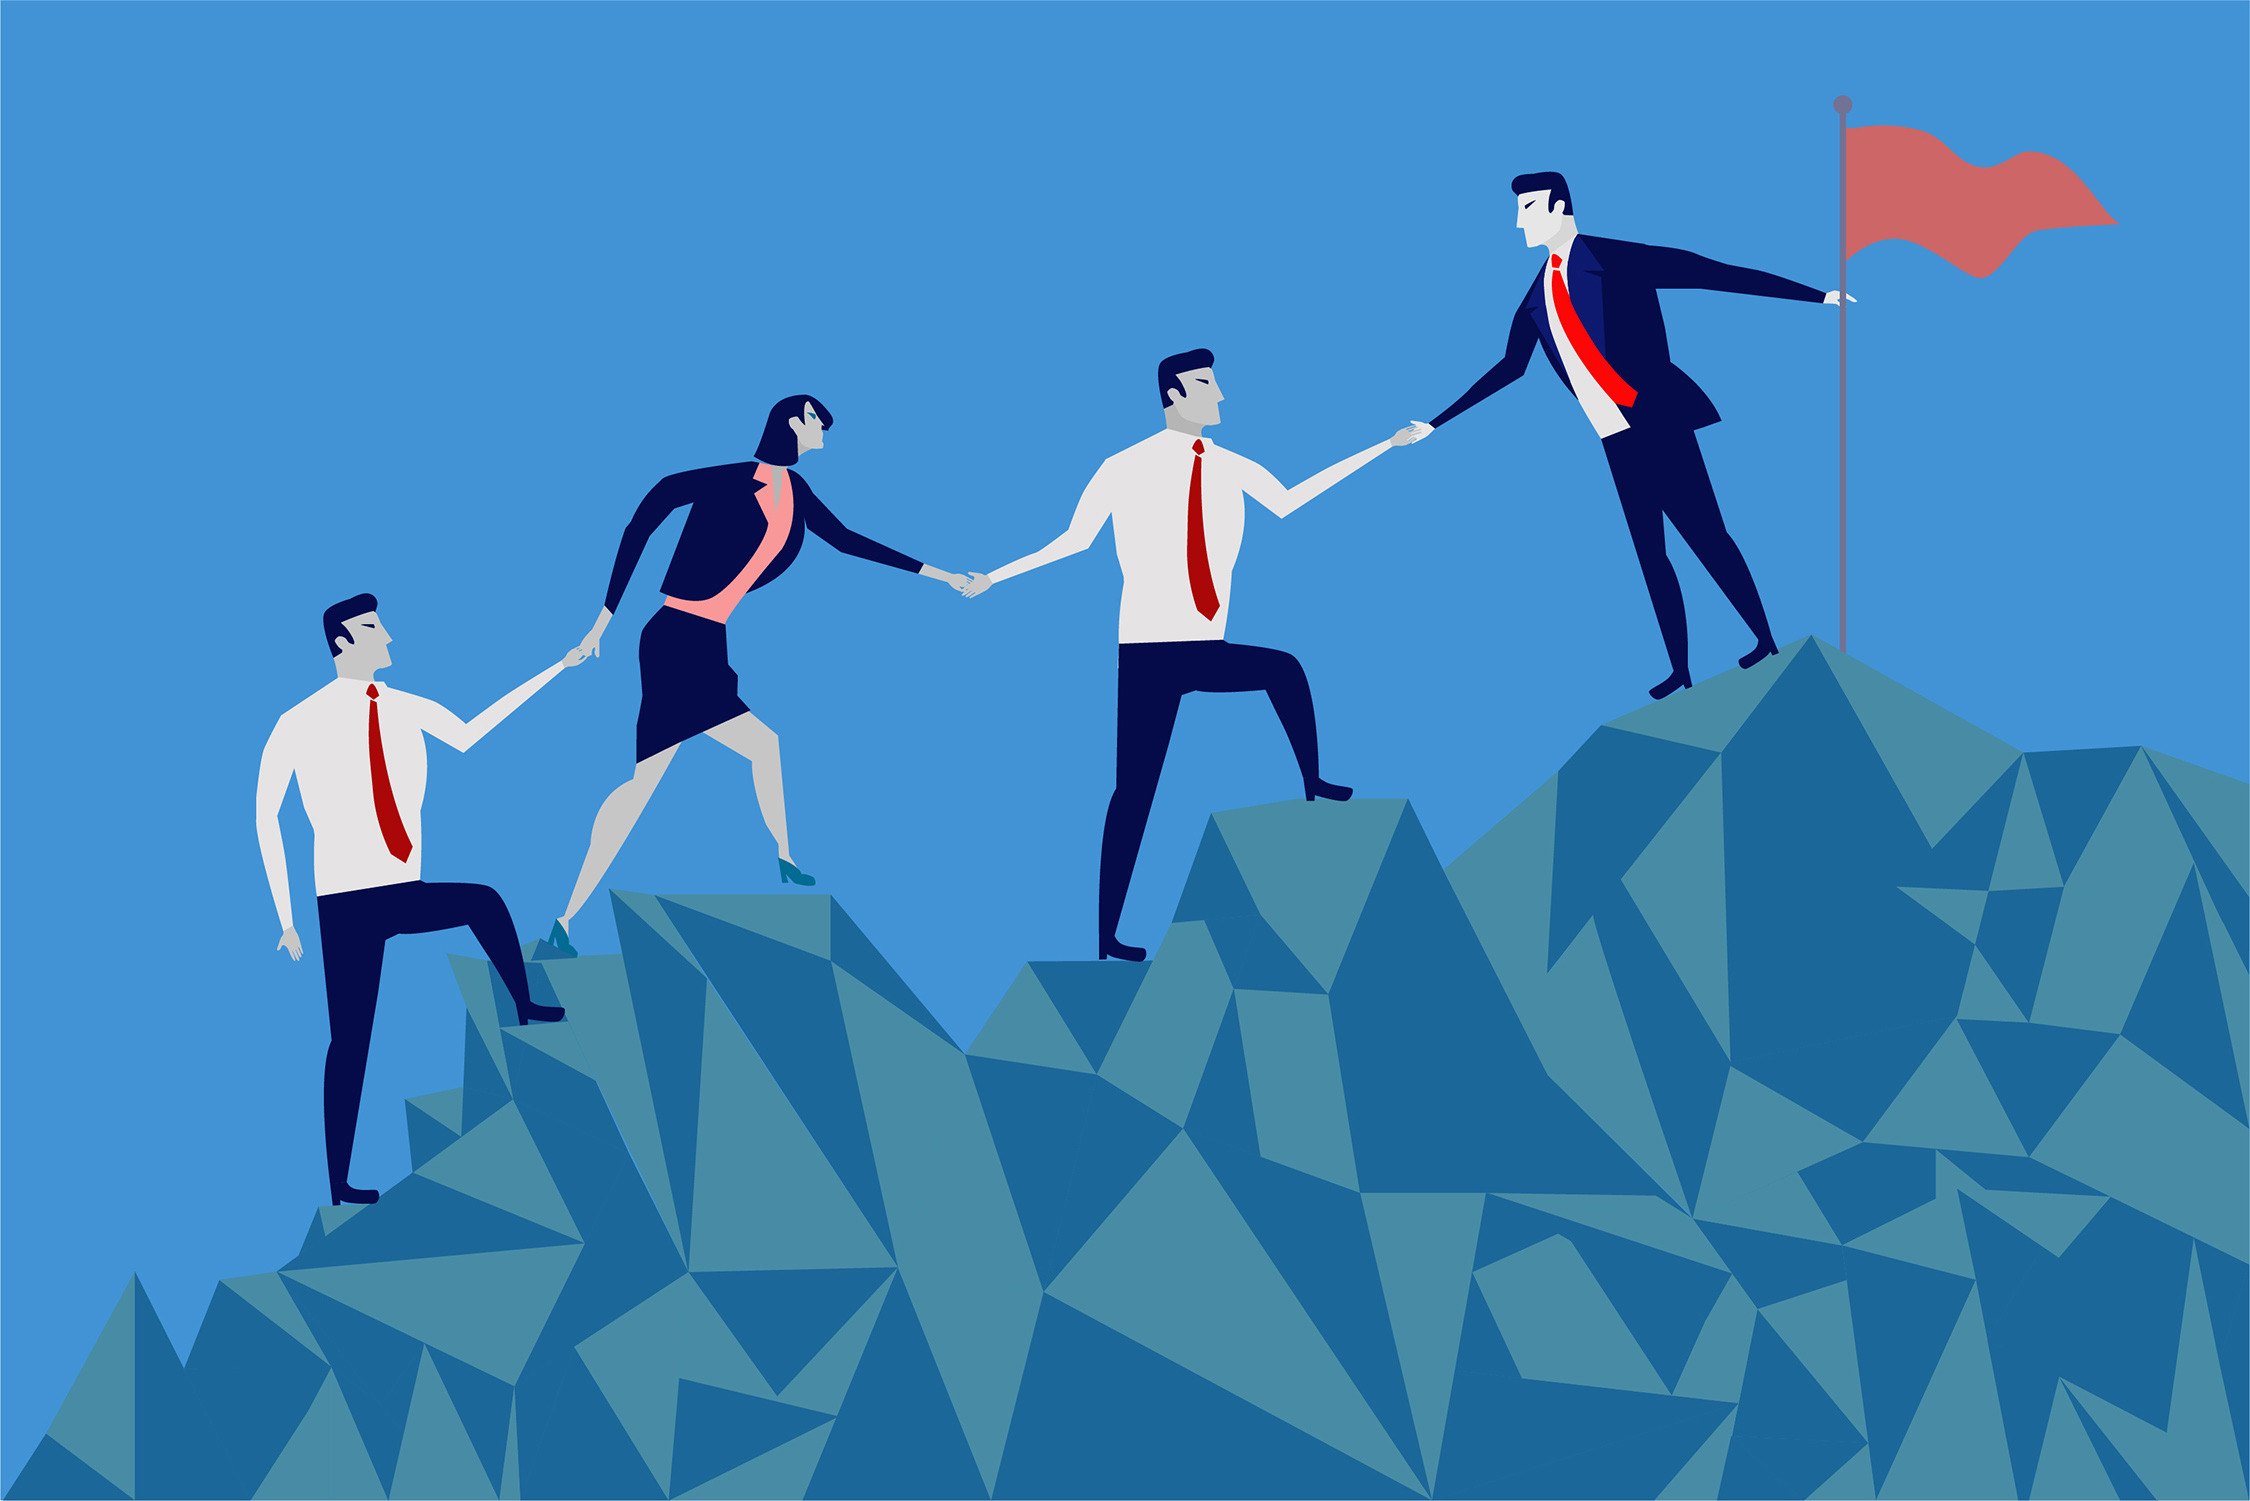 leaders face challenges in the market and work place